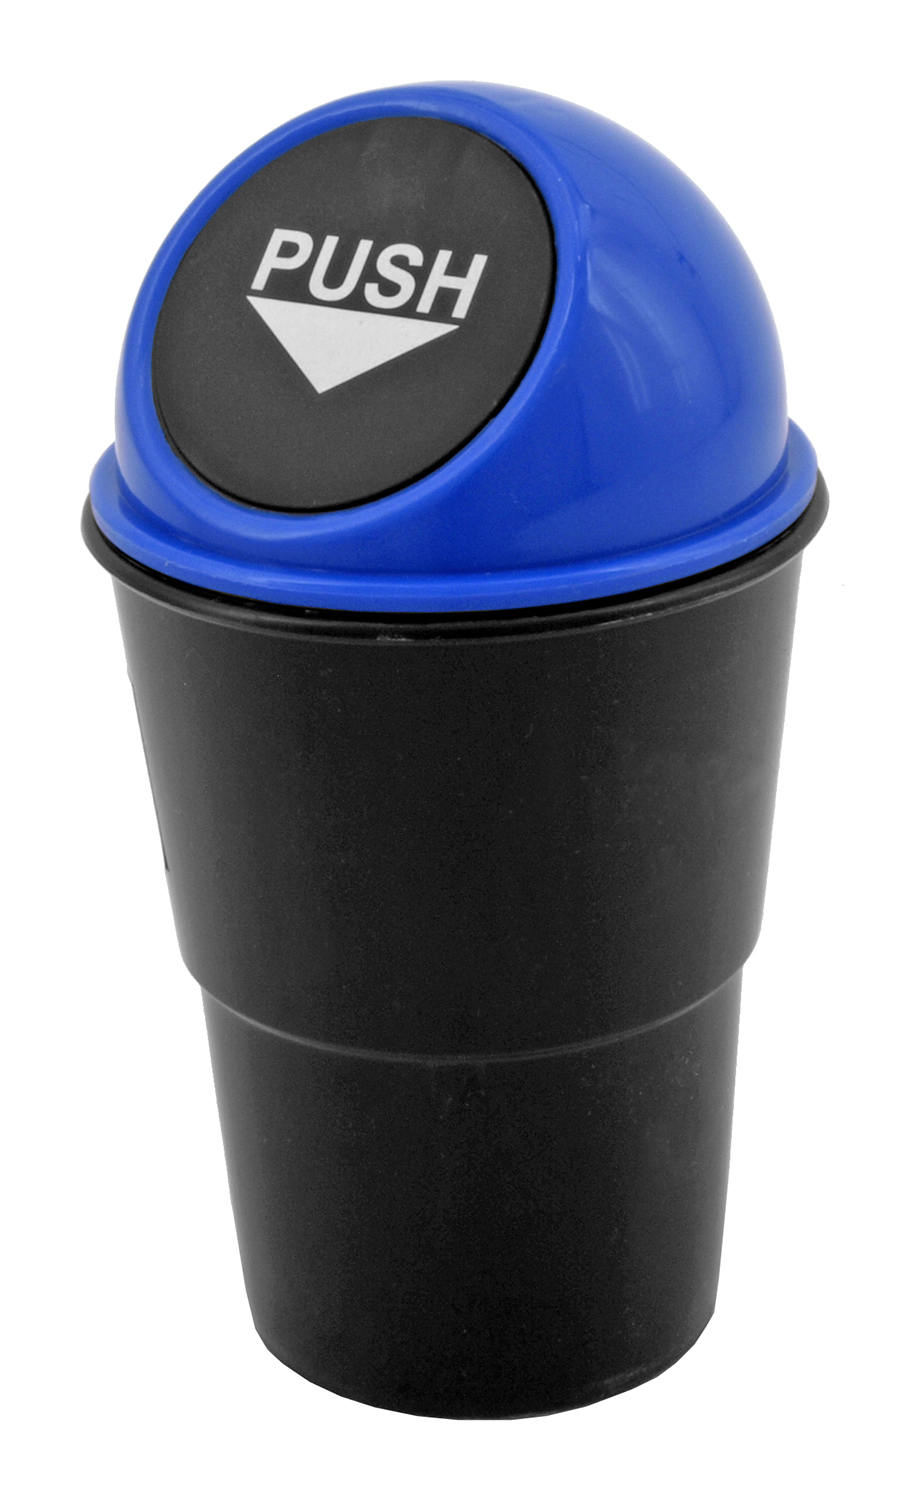 Vehicle Cup Holder Trash Can Bin - Assorted Colors